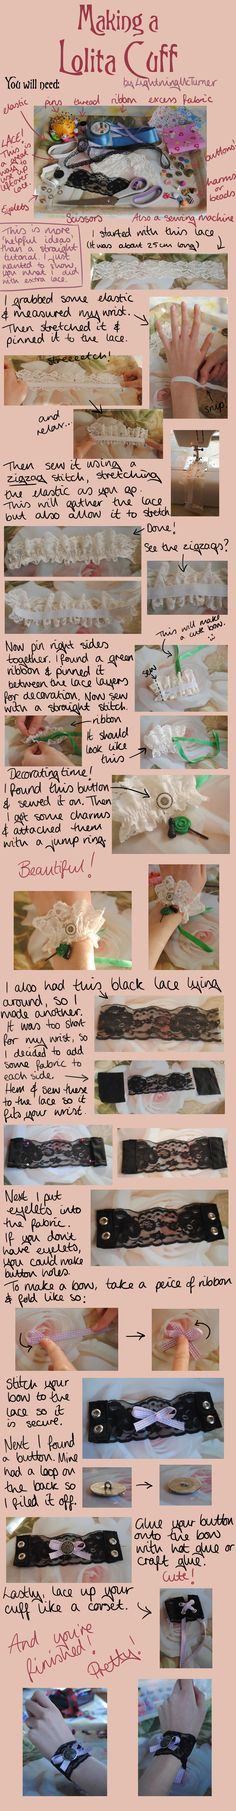 Lolita Cuff Tutorial by LightningMcTurner on deviantART